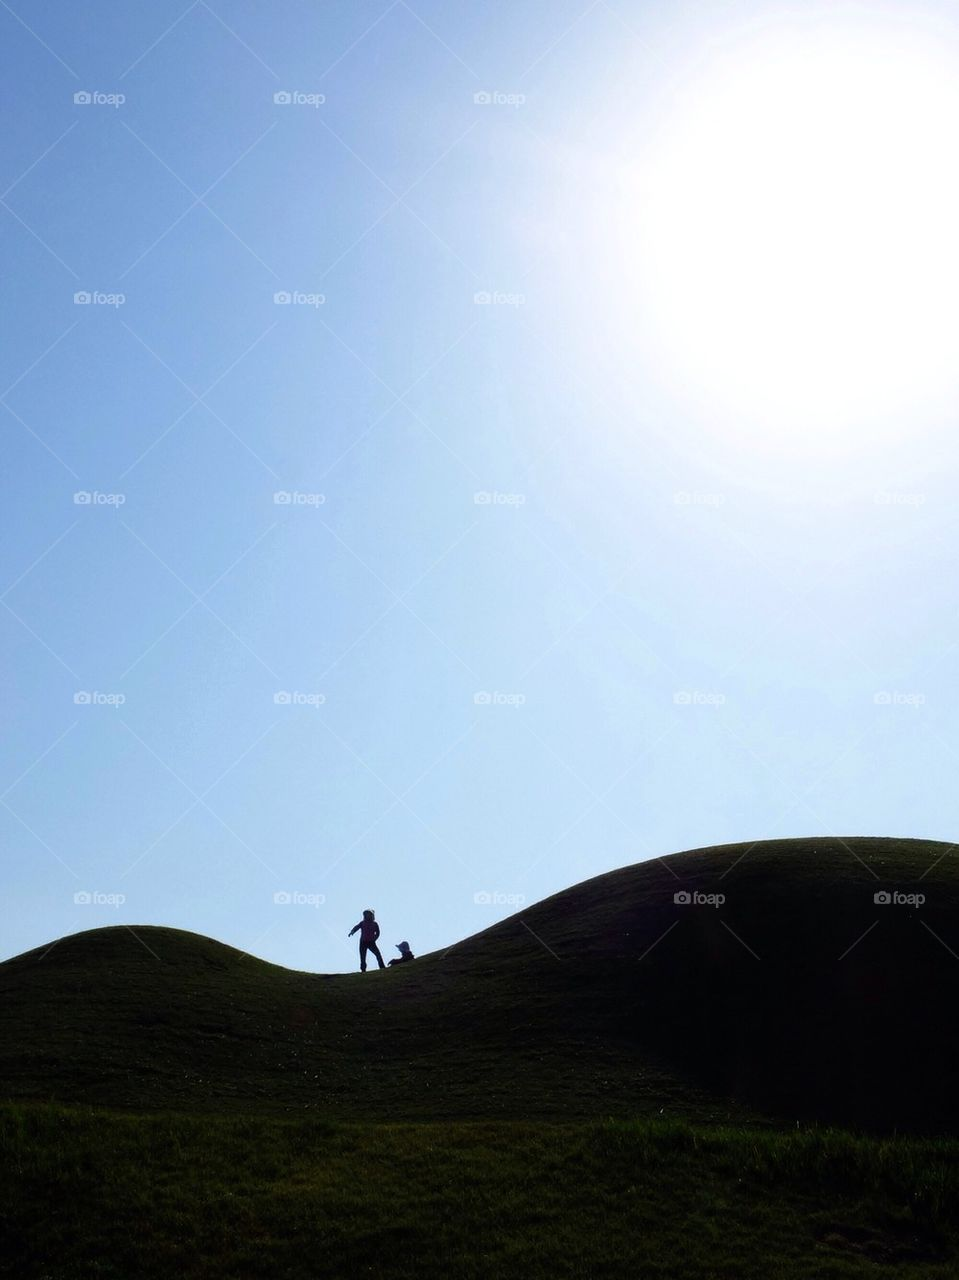 Silhouette of 2 persons on a rolling hill